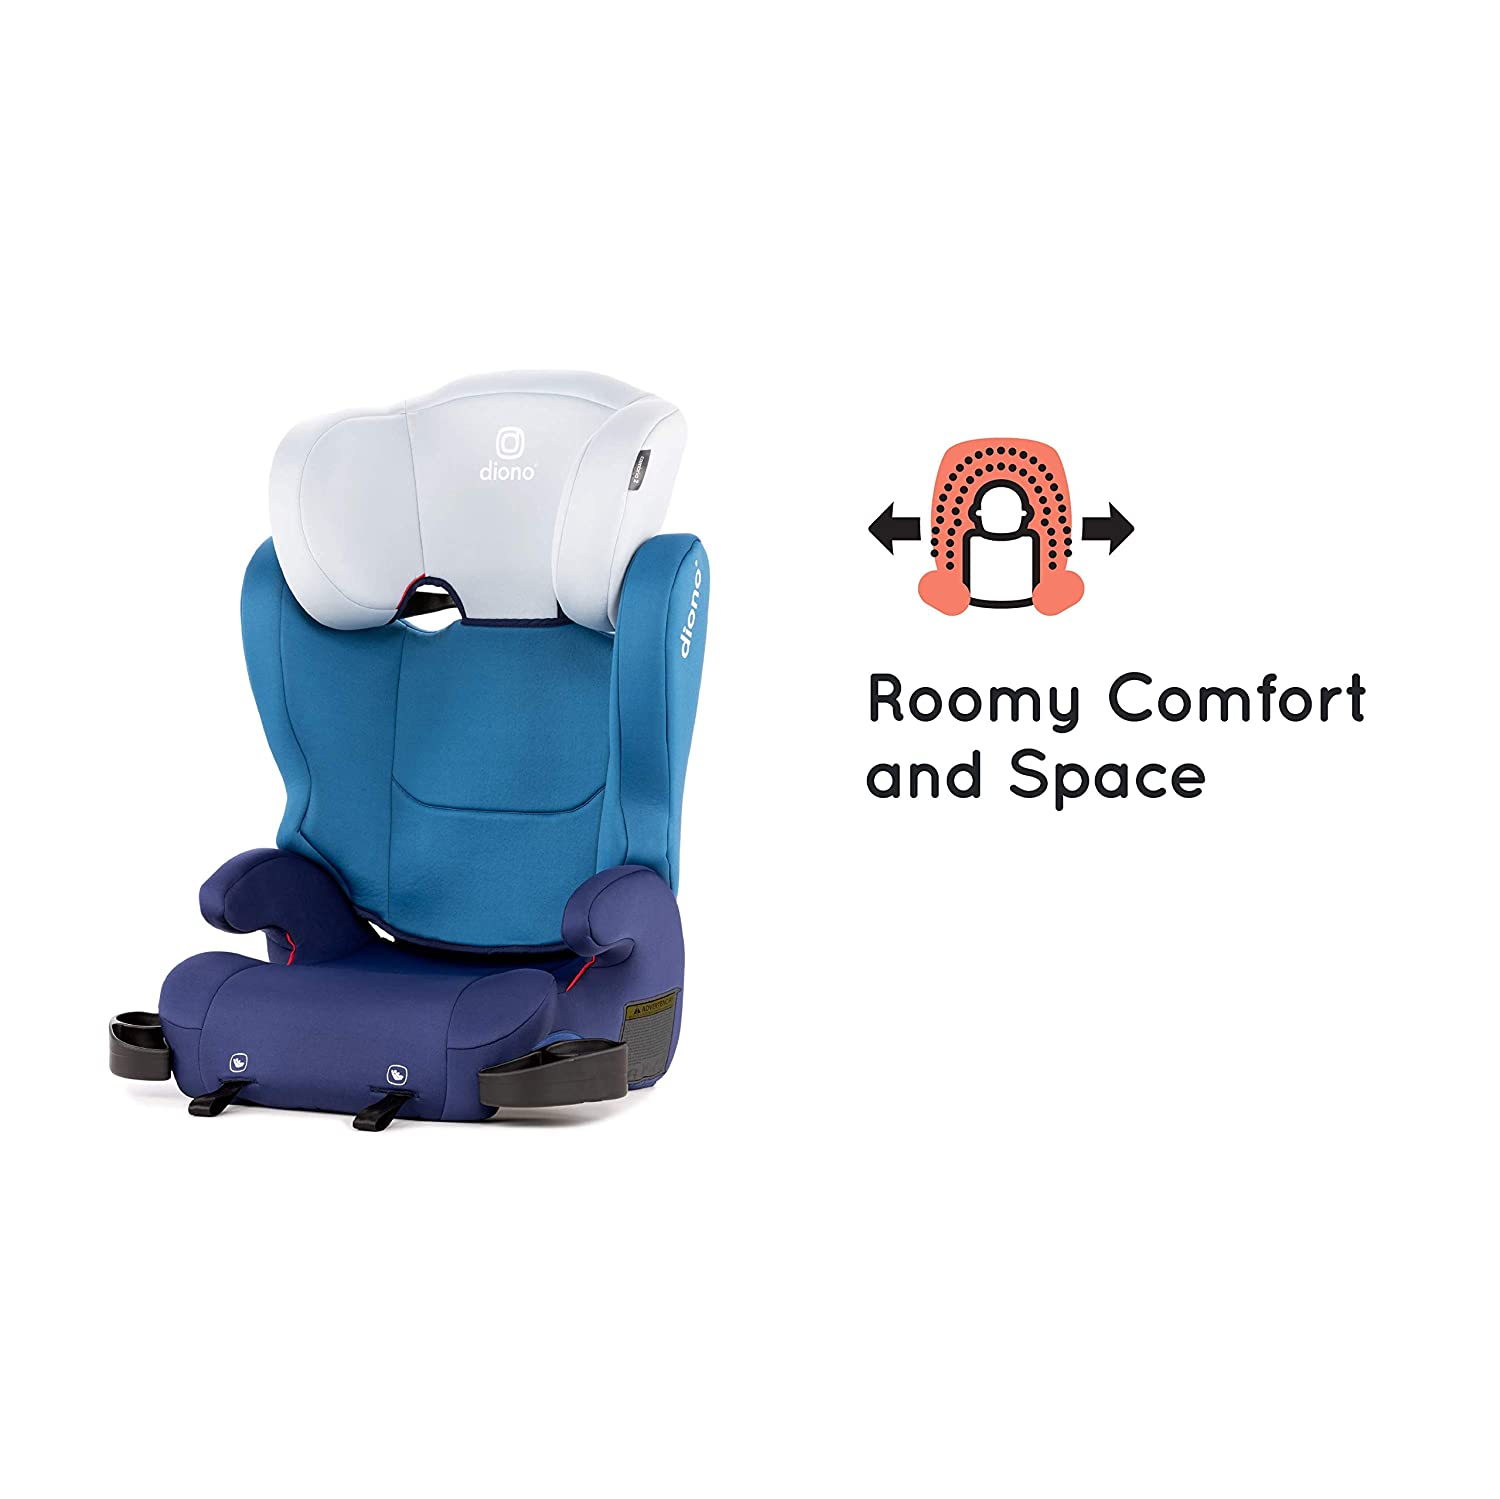 40-120 Pounds Black Diono Cambria 2 High-Back Childrens Booster Seat 6 Position Head-Support